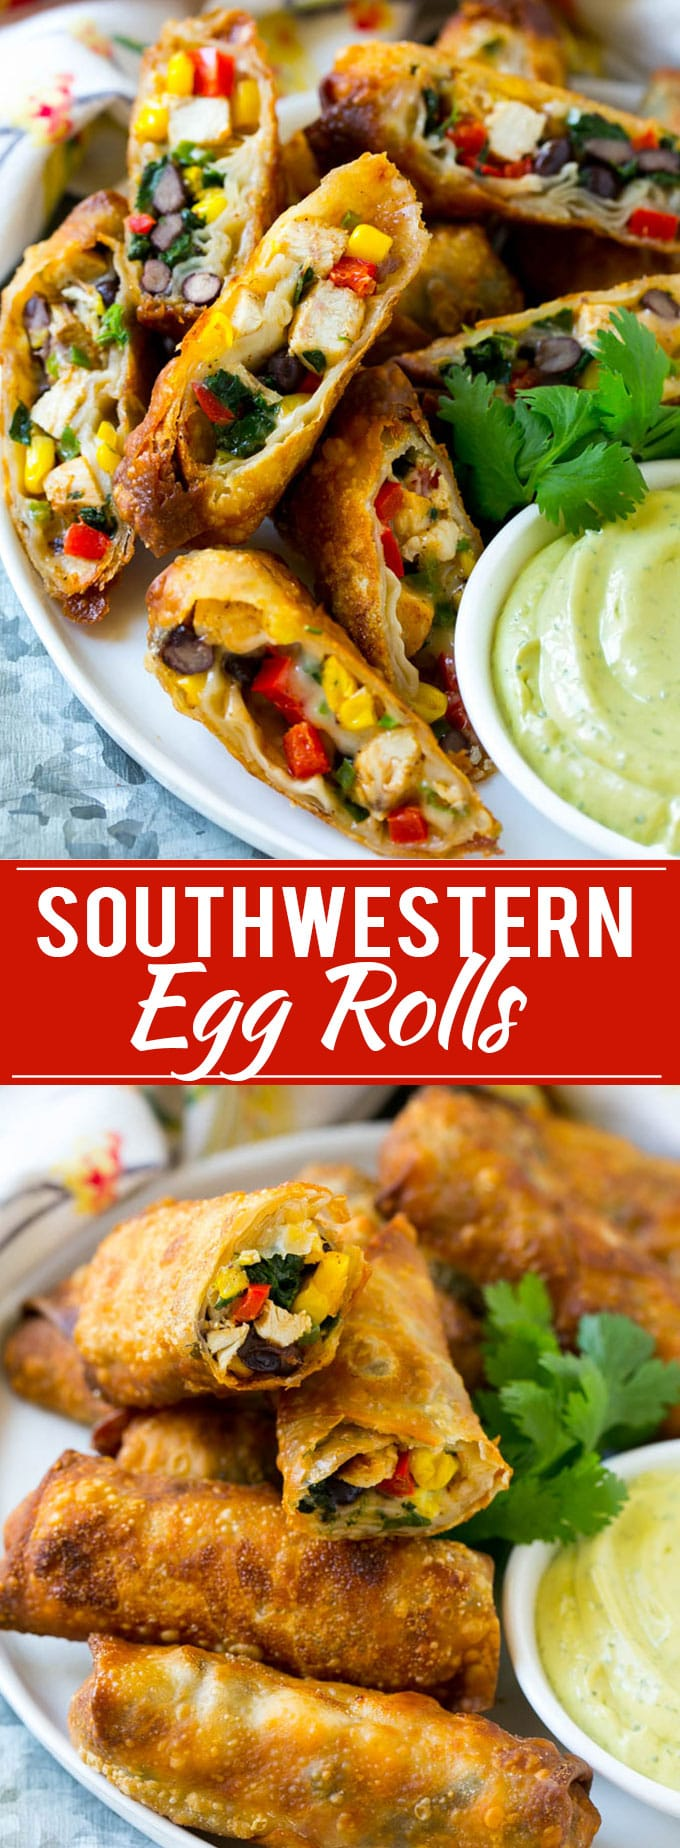 Southwestern Egg Rolls Recipe | Easy Egg Roll Recipe | Mexican Appetizer | Egg Roll Recipe | Southwest Egg Rolls